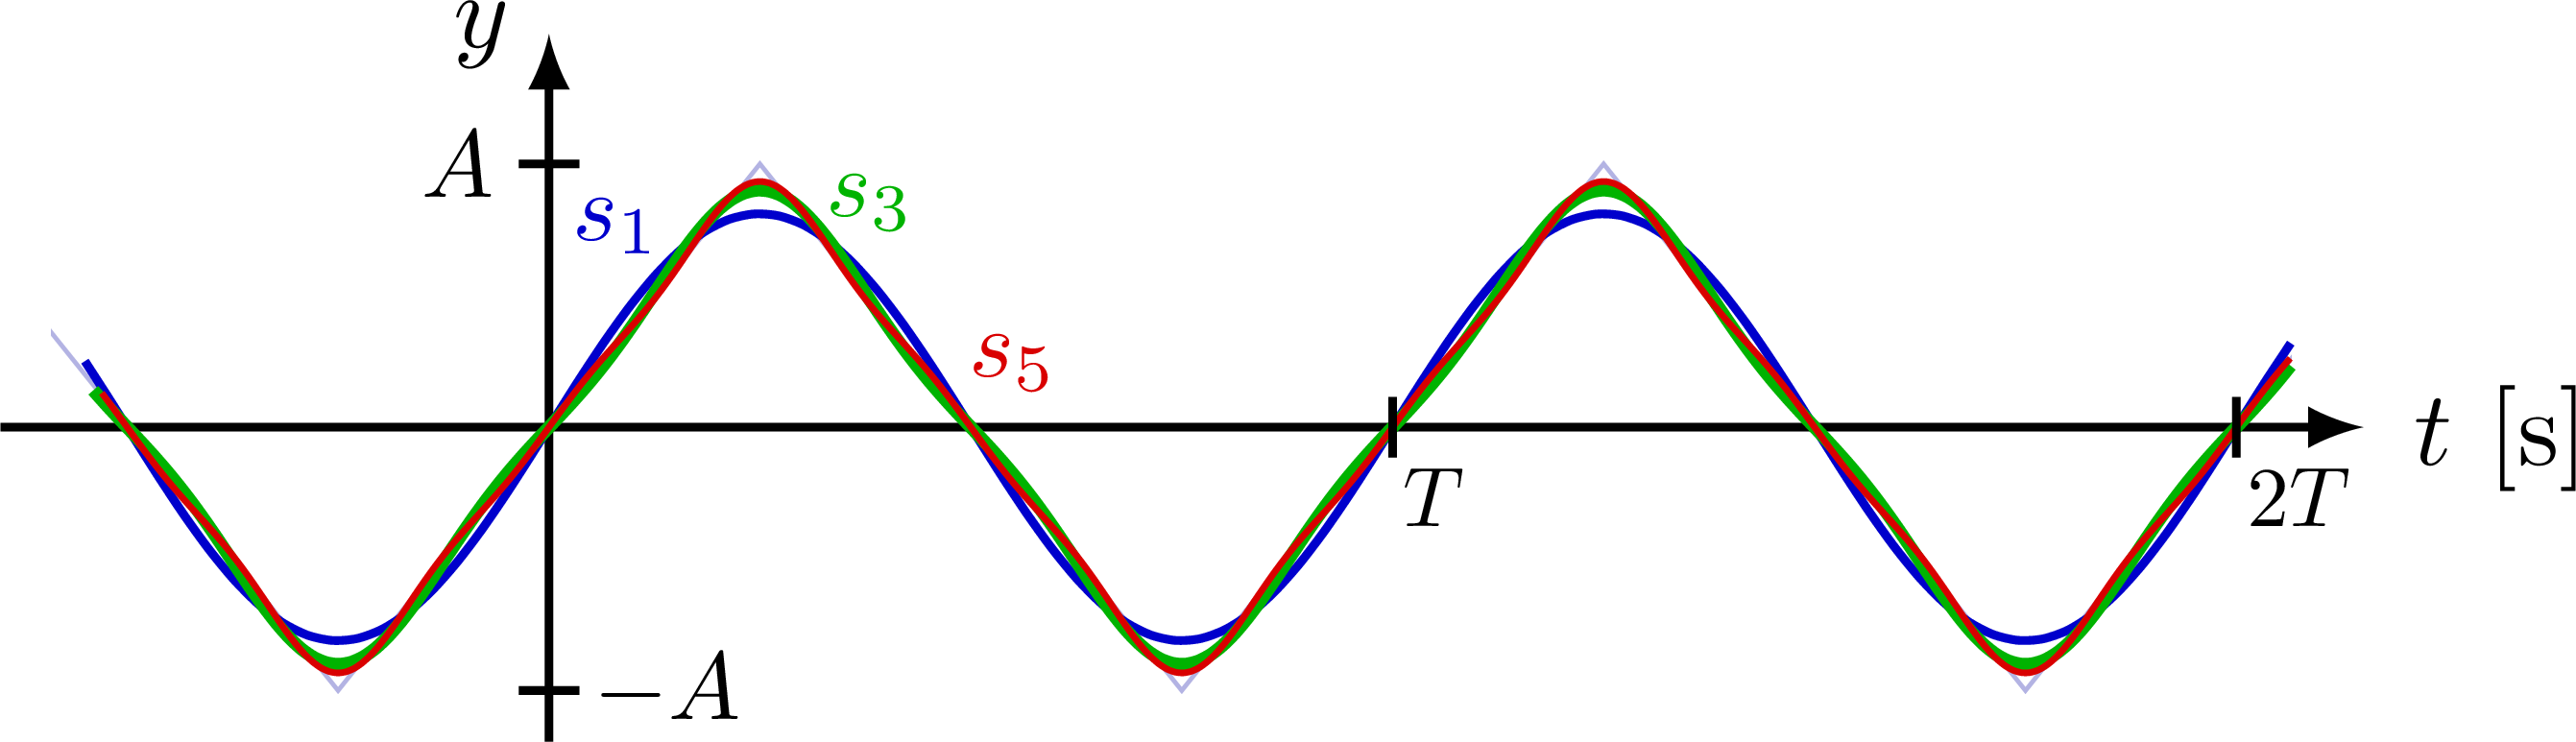 fourier_series-007.png